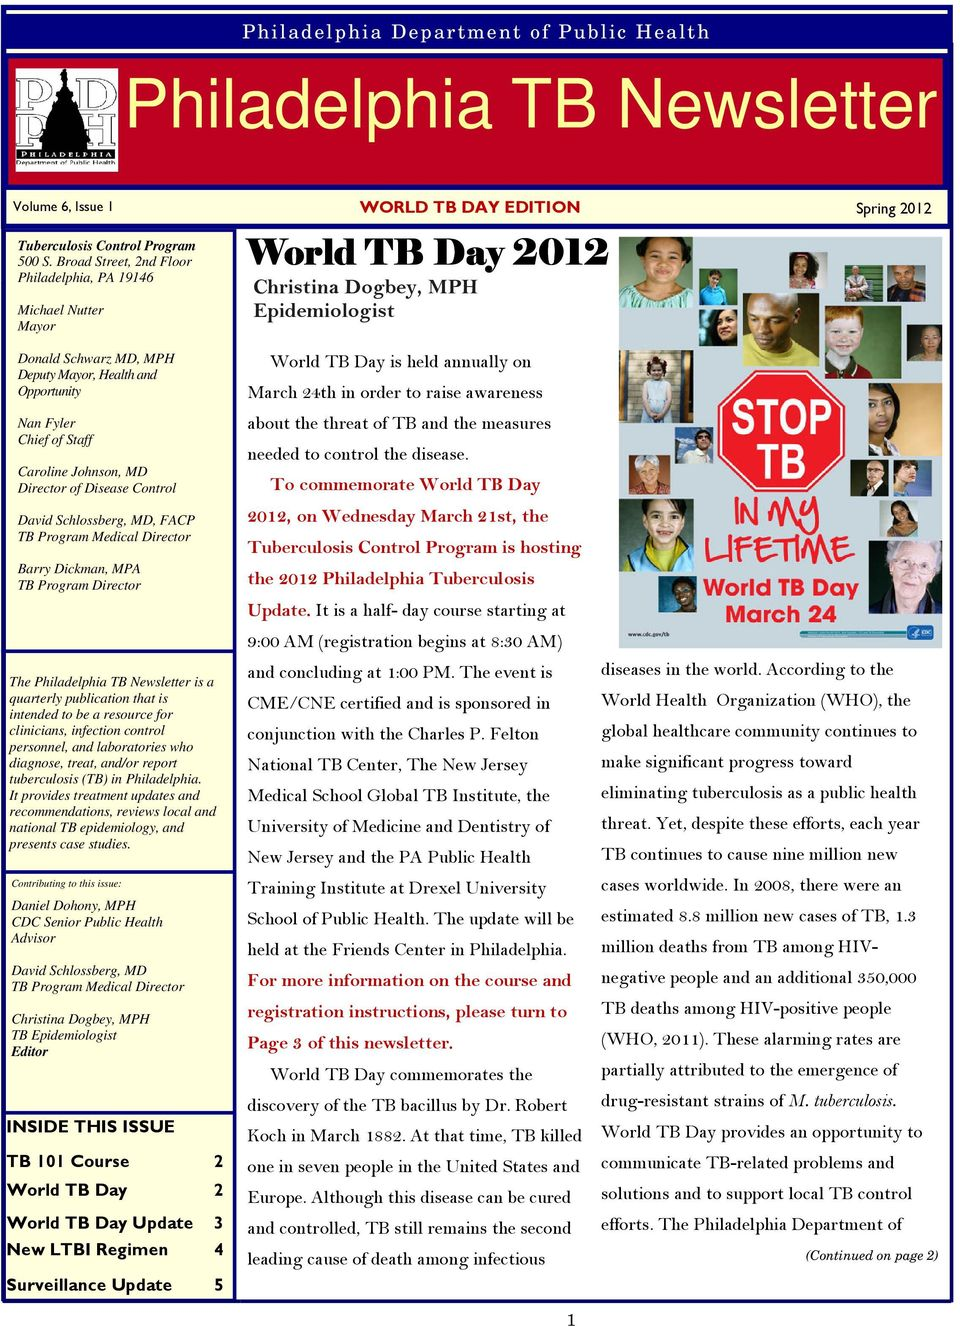 Johnson, MD Director of Disease Control, FACP TB Program Medical Director Barry Dickman, MPA TB Program Director The Philadelphia TB Newsletter is a quarterly publication that is intended to be a